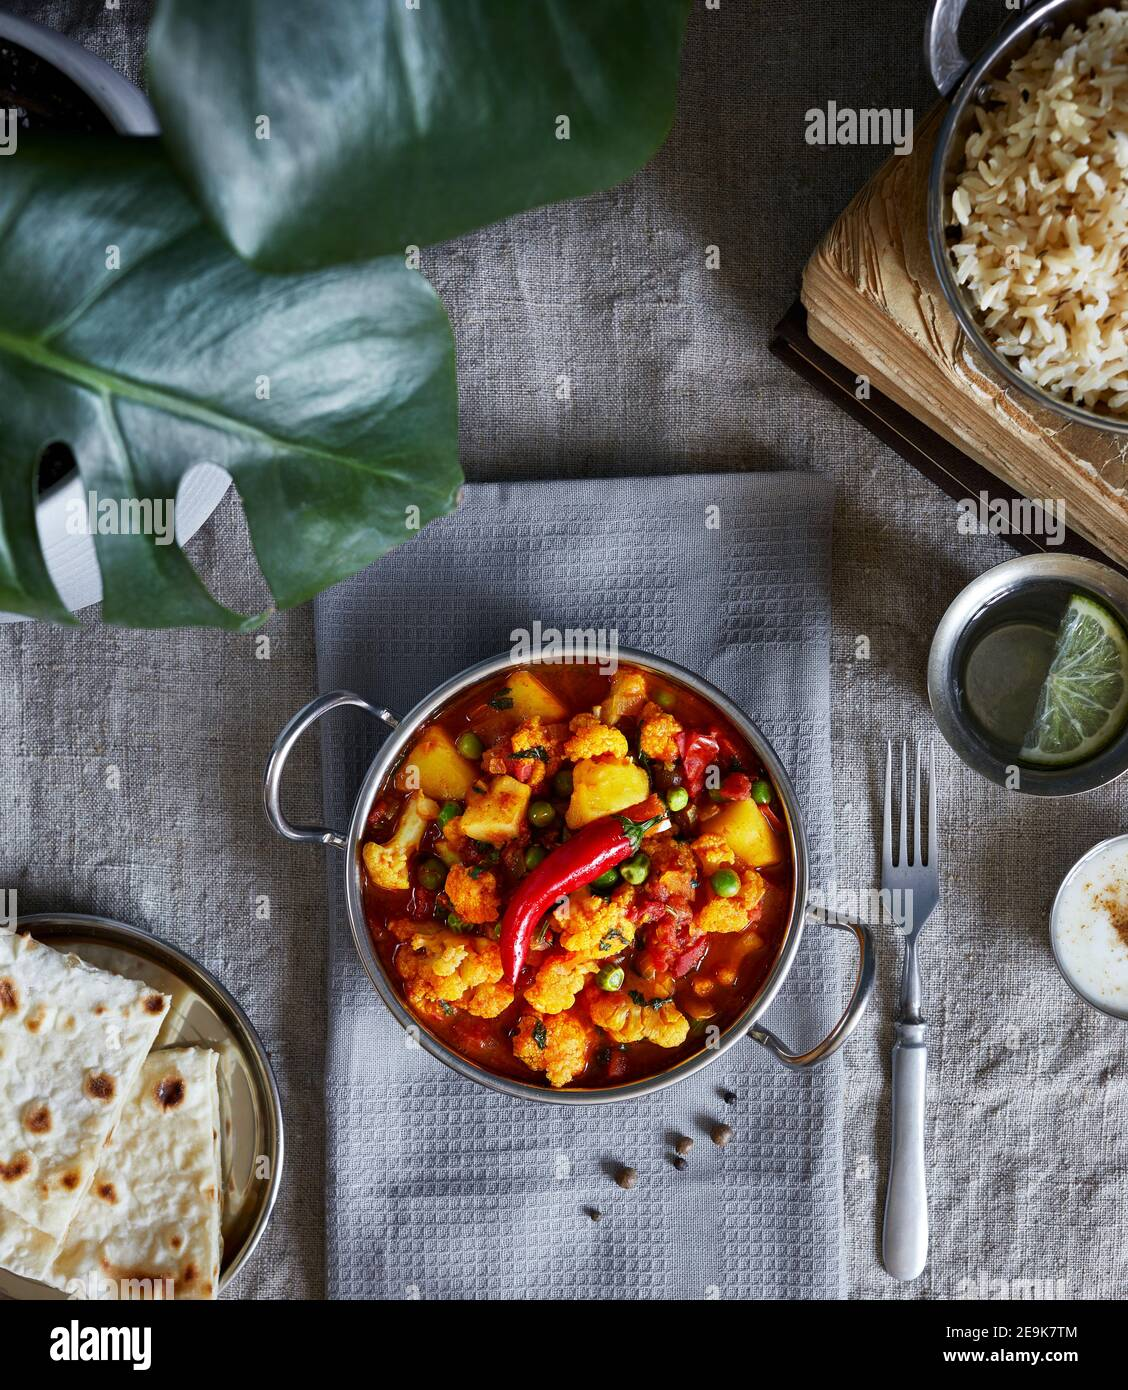 Aloo gobi traditional Indian food from cauliflower and potato decorated with red chili served with brown rice, dahi, lemon water and chapati on the ta Stock Photo